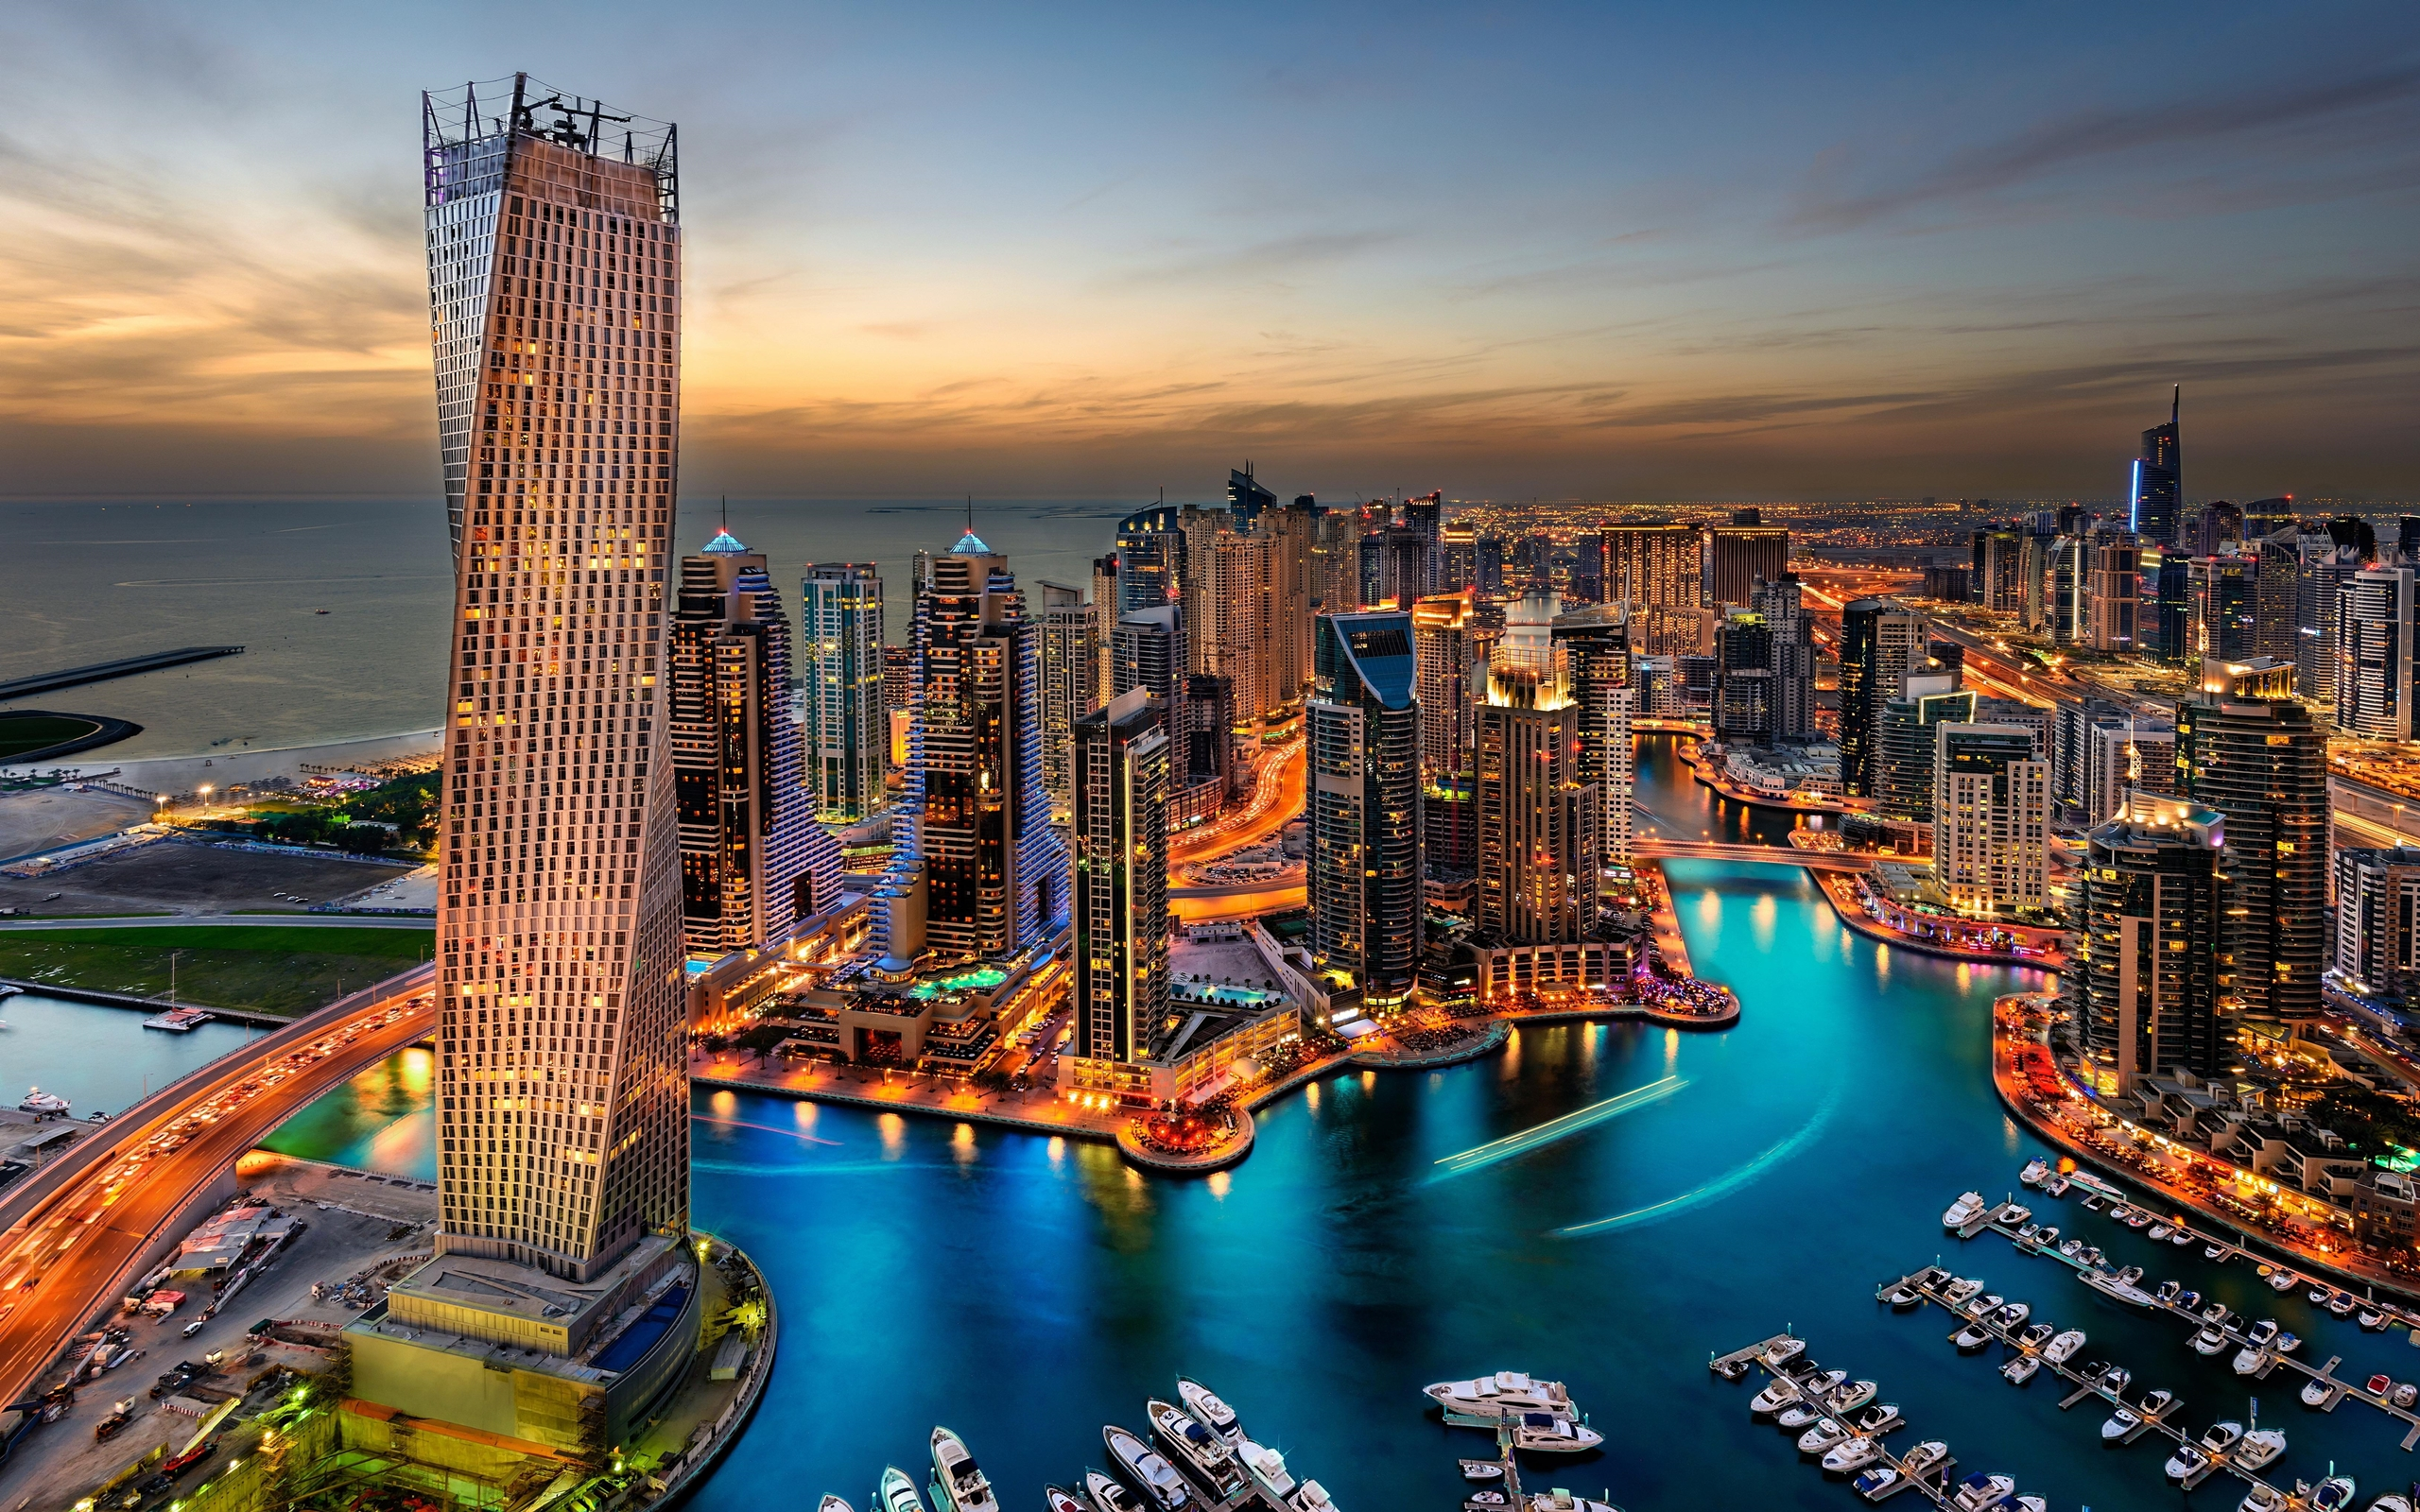 Usa Hd Wallpaper Download Dubai Uae Buildings Skyscrapers Night Hd Wallpaper 93494